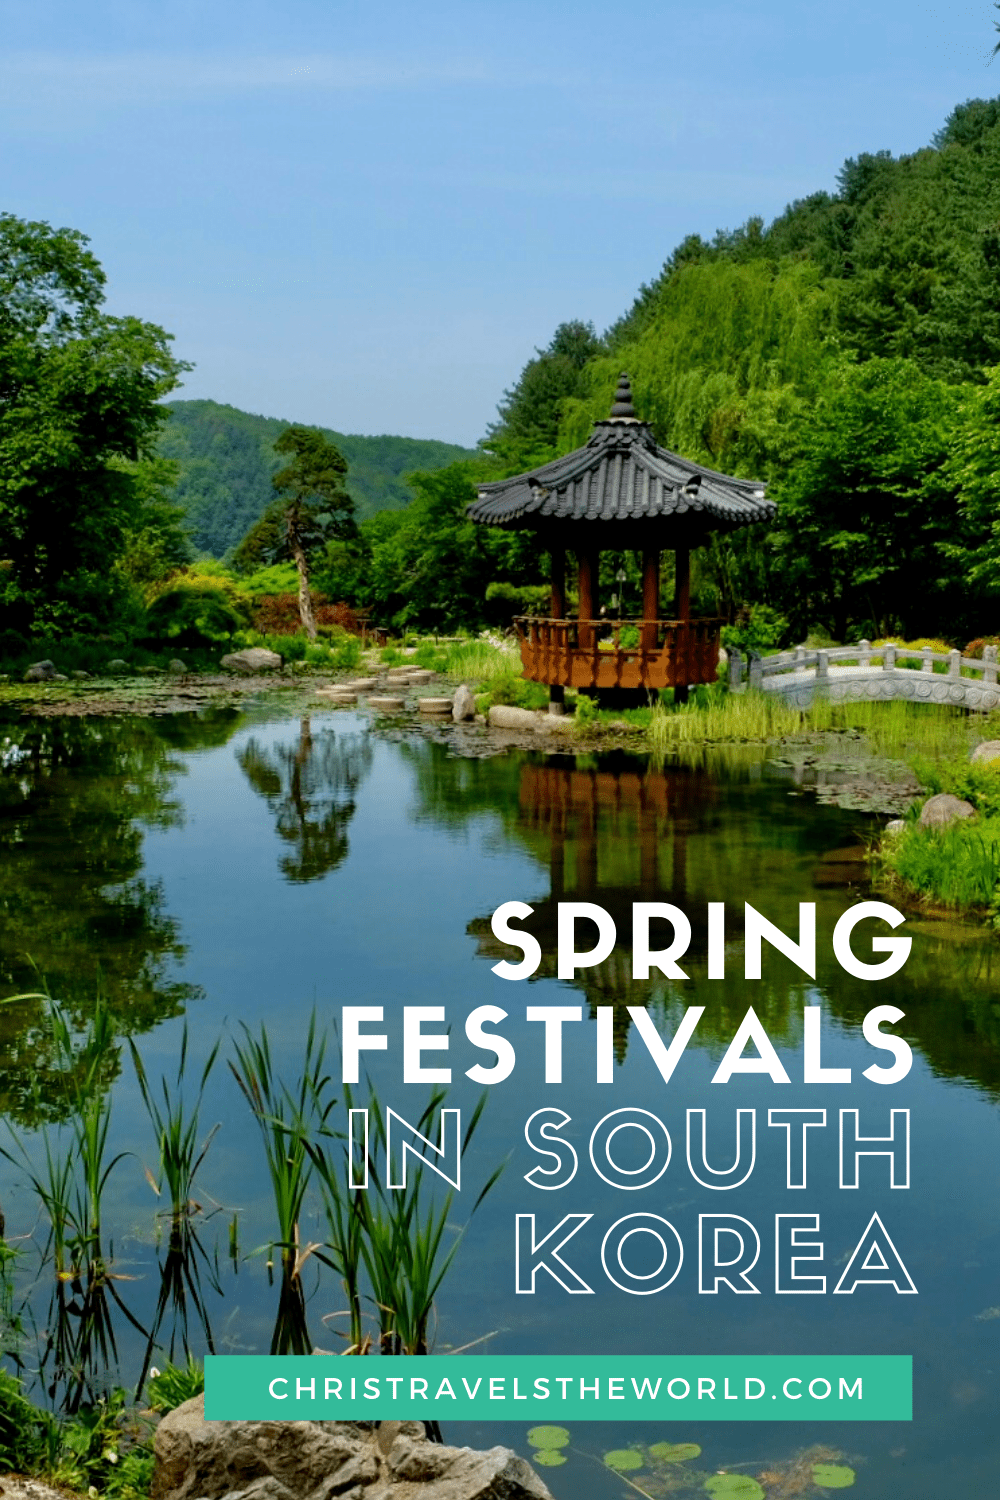 Very compete list of spring festivals in South Korea. Detailed information on festival activities, what to expect, how much does it cost and how to get there. Best festivals in South Korea during the Spring season.